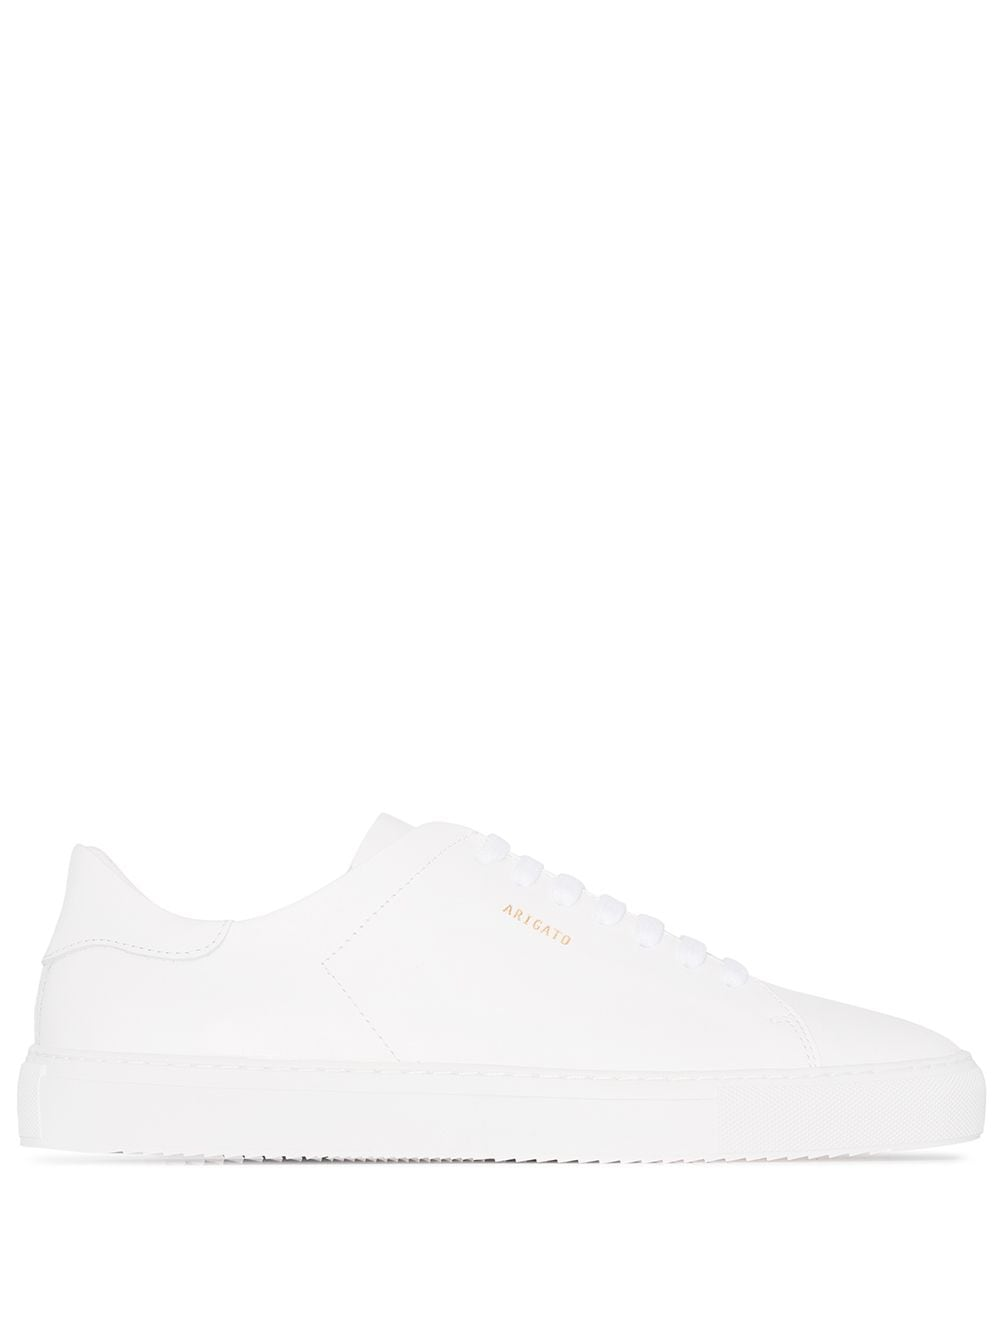 sneakers clean 90 uomo bianche in pelle AXEL ARIGATO | Sneakers | 28102WHITE